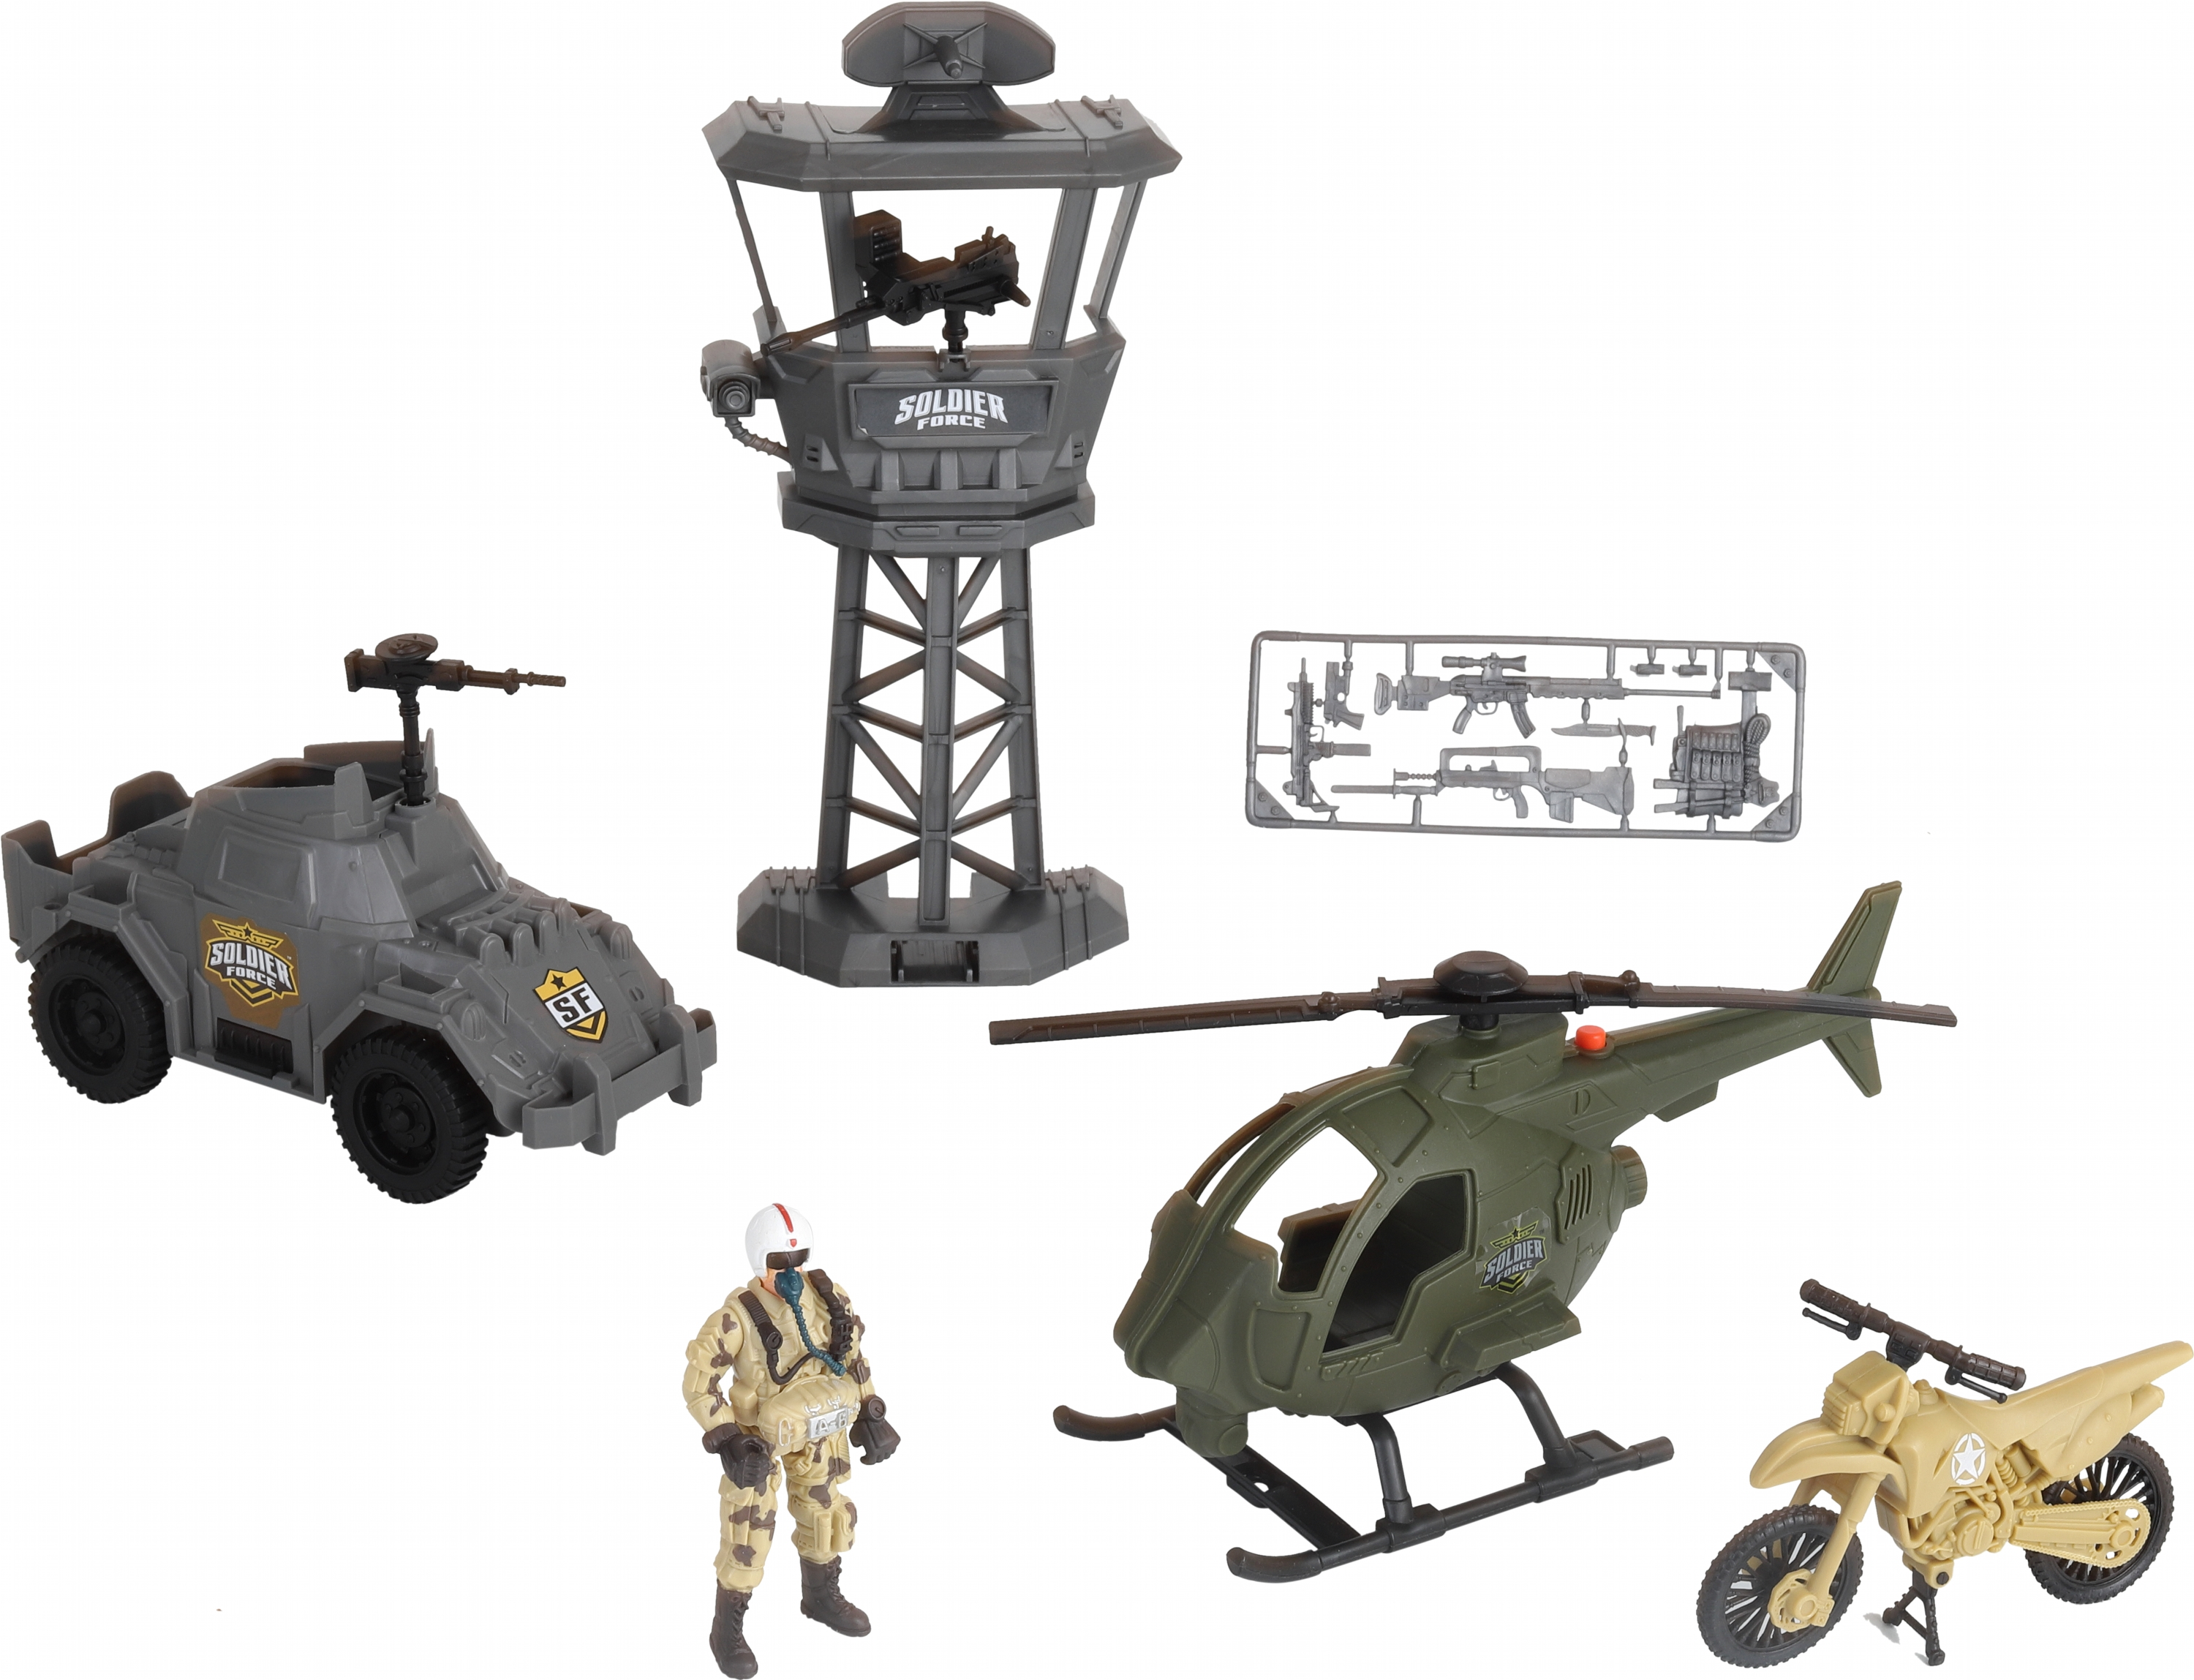 Soldier Force - Defense Outpost Playset (545053)